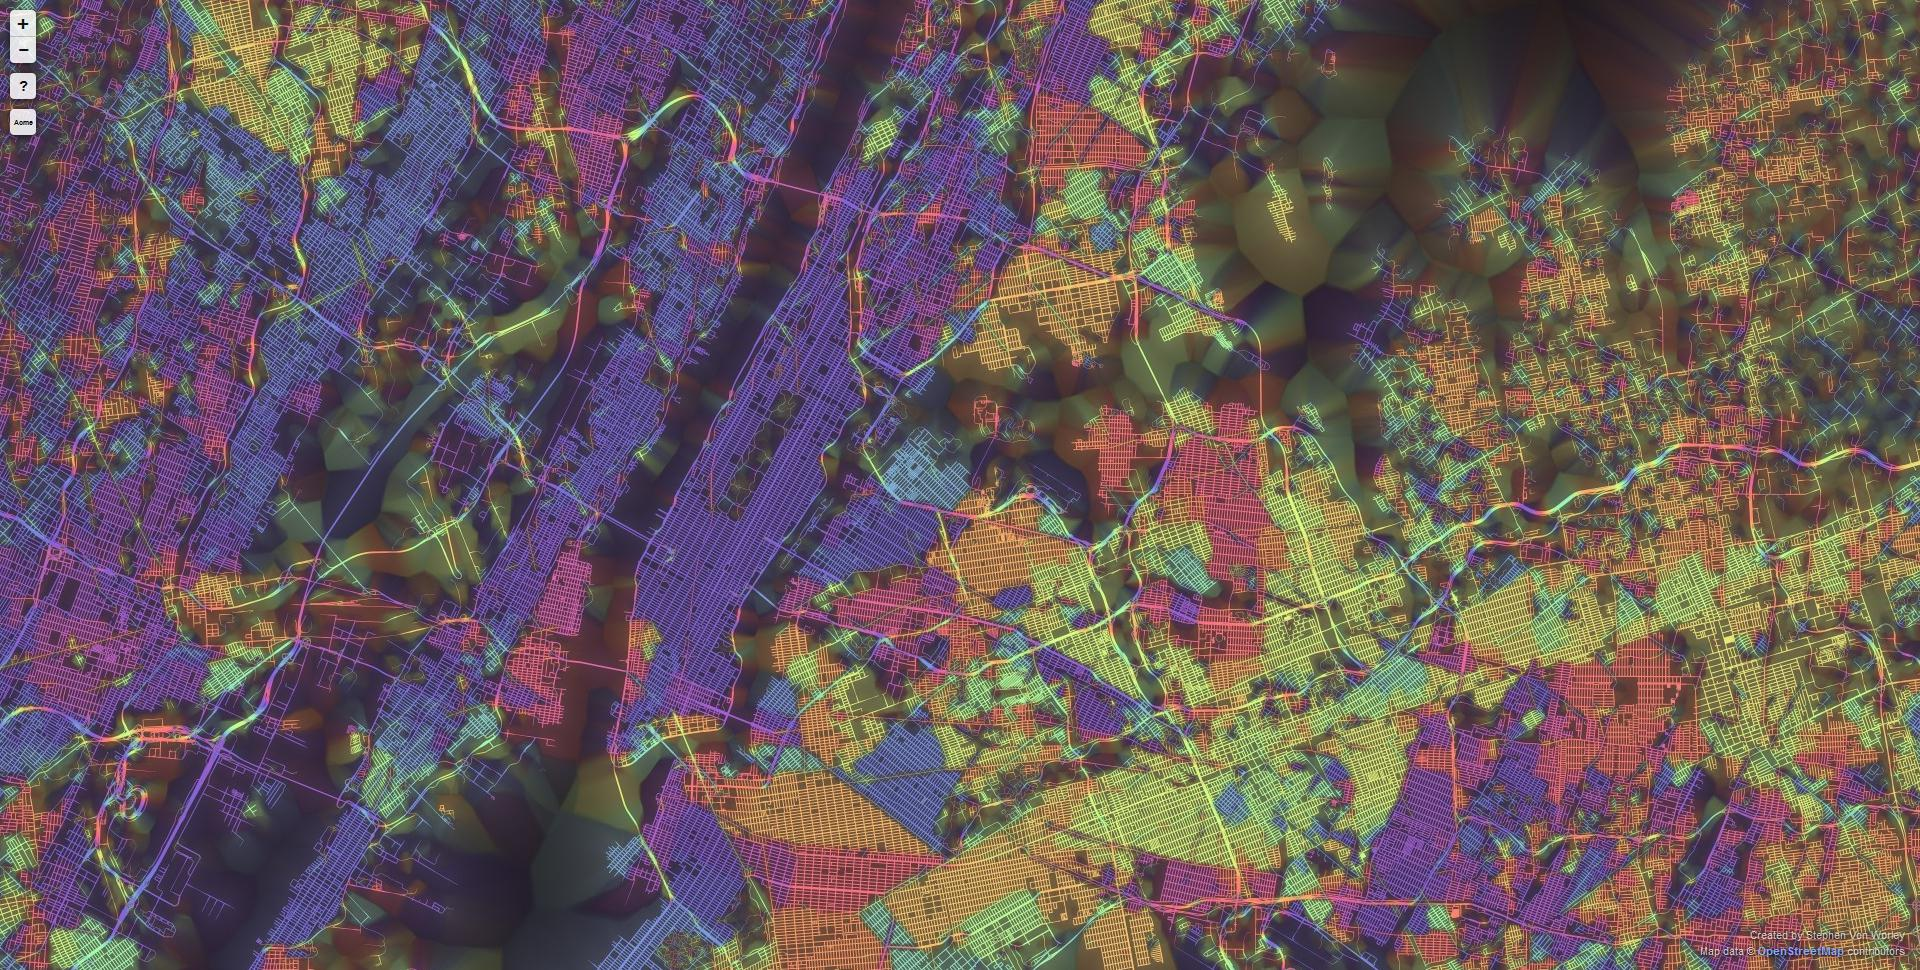 Ten Cities Visualized by the Street Patterns